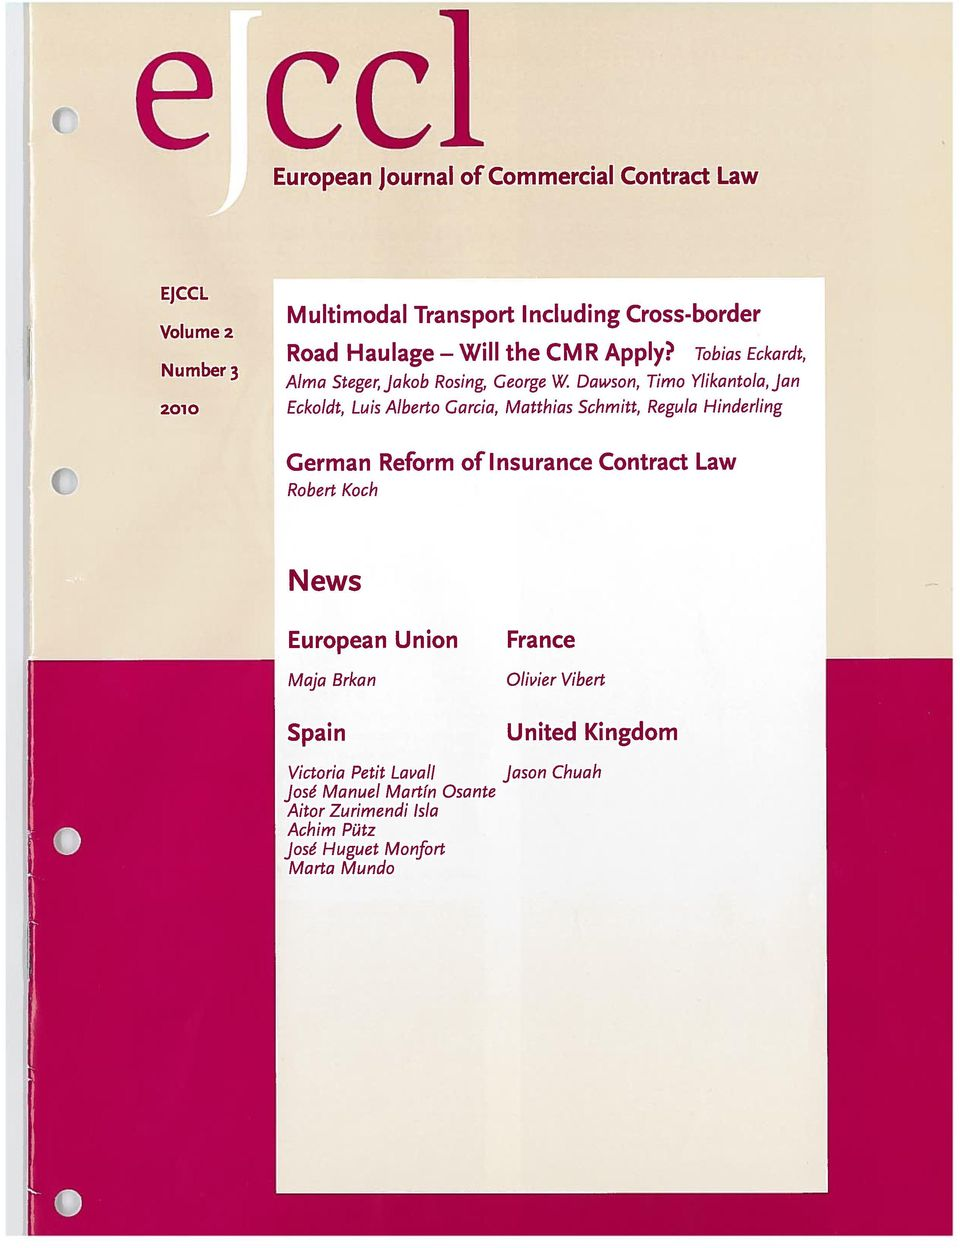 Dawson, Timo Ylikantola, Jan Eckoldt, Luis Alberto Garcia, Matthias Schmitt, Regula Hinderling 0 German Reform of Insurance Contract Law